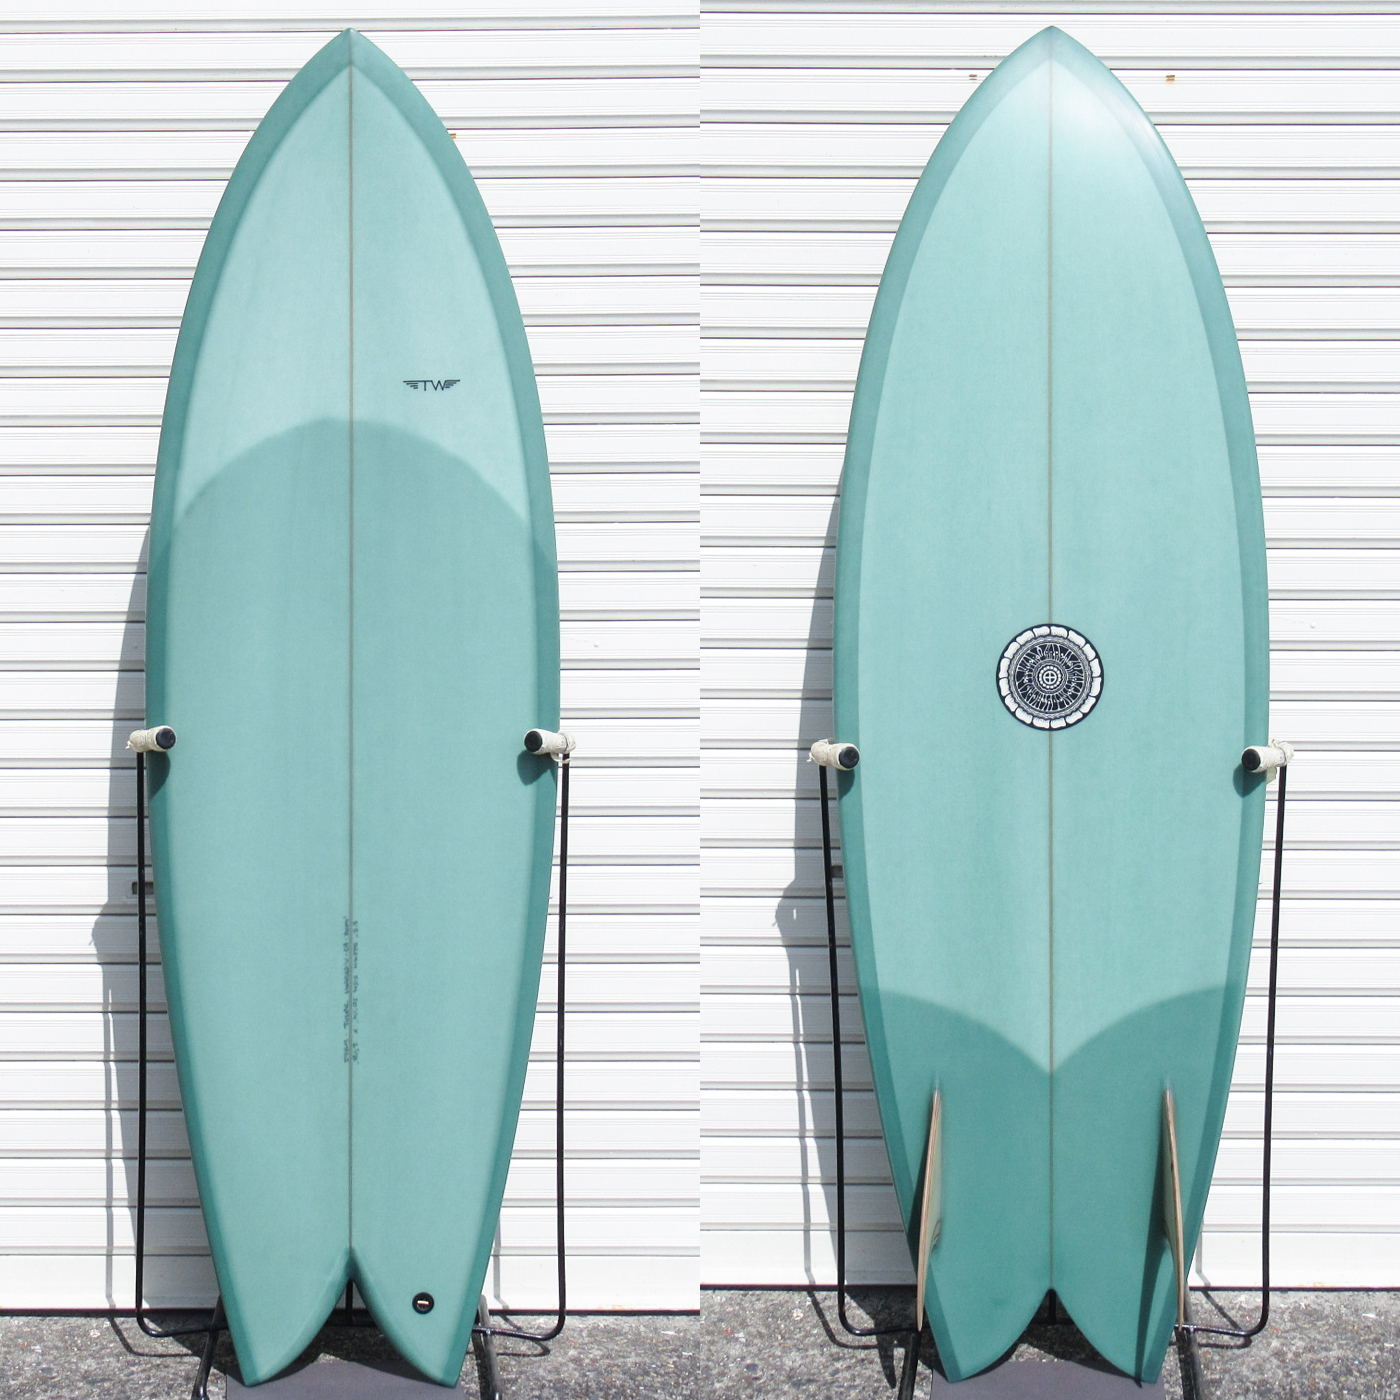 "【新品ストック】TYLER WARREN / DREAM FISH 5'5"" x 20-1/4"" x 2-3/8"" No.20200303_3"